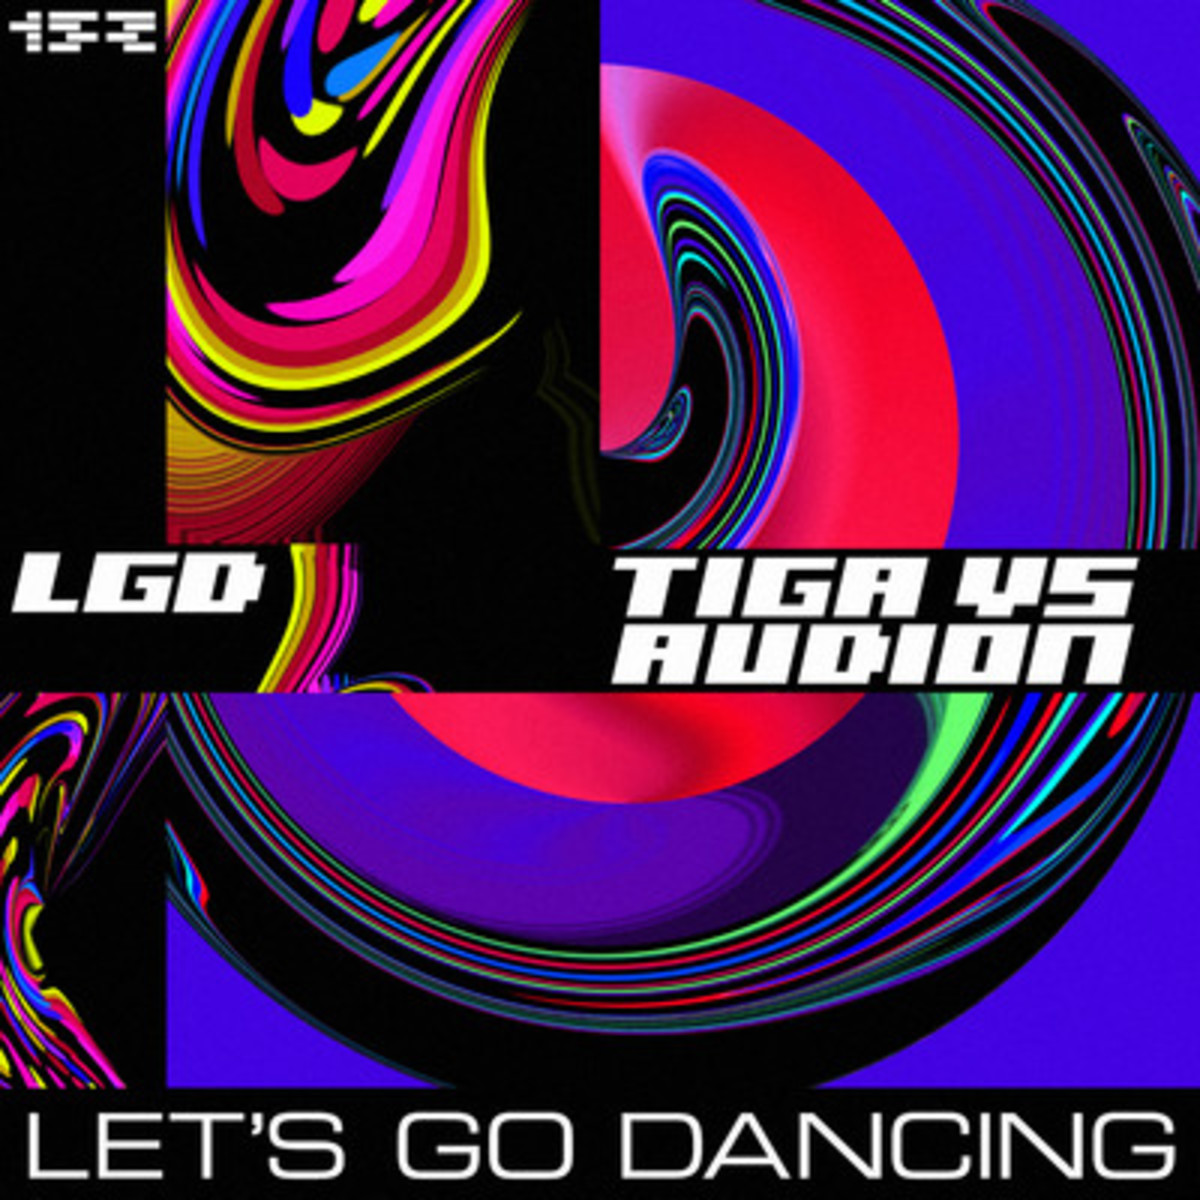 "EDM News: New Electronic Music From Tiga And Audio ""Let's Go Dancing"""